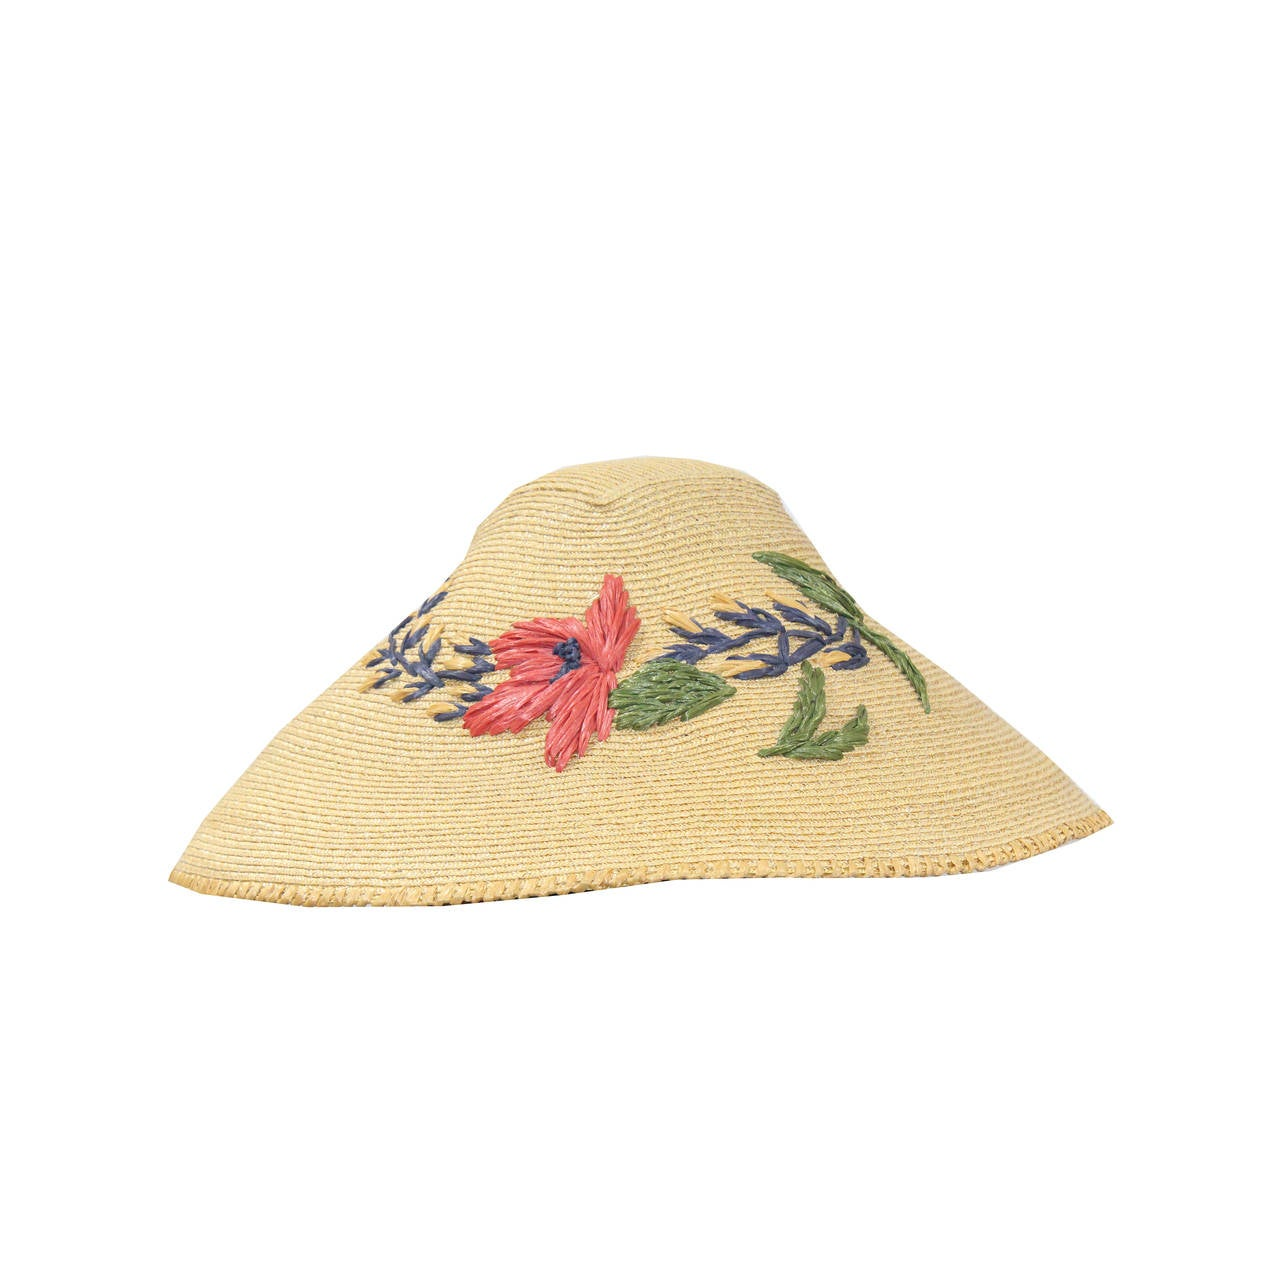 Embroidery Hats Near Me | Makaroka.com